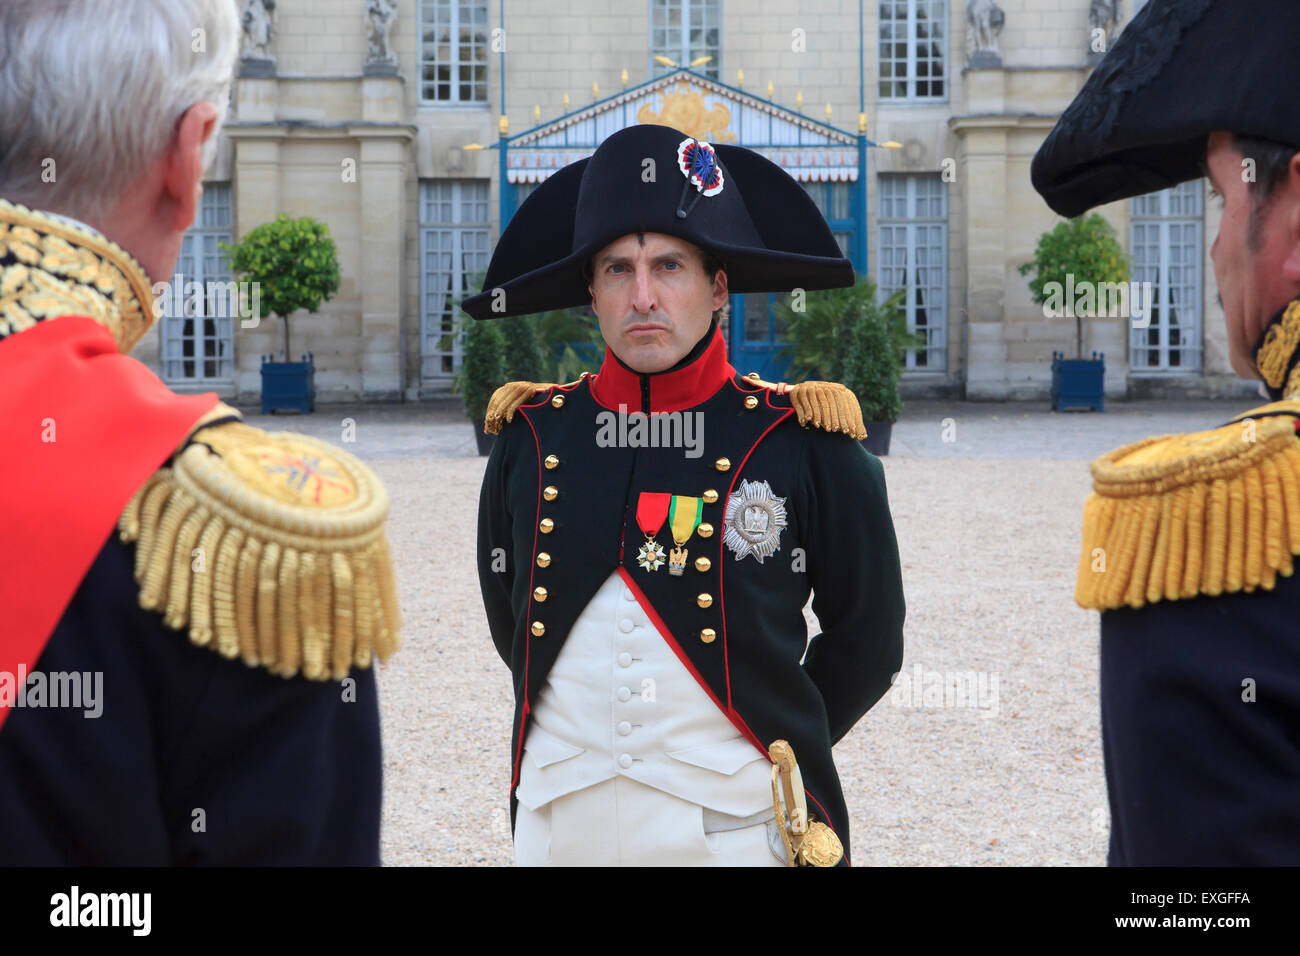 Napoleon Bonaparte Hat Stock Photos   Napoleon Bonaparte Hat Stock ... 5690a086f47